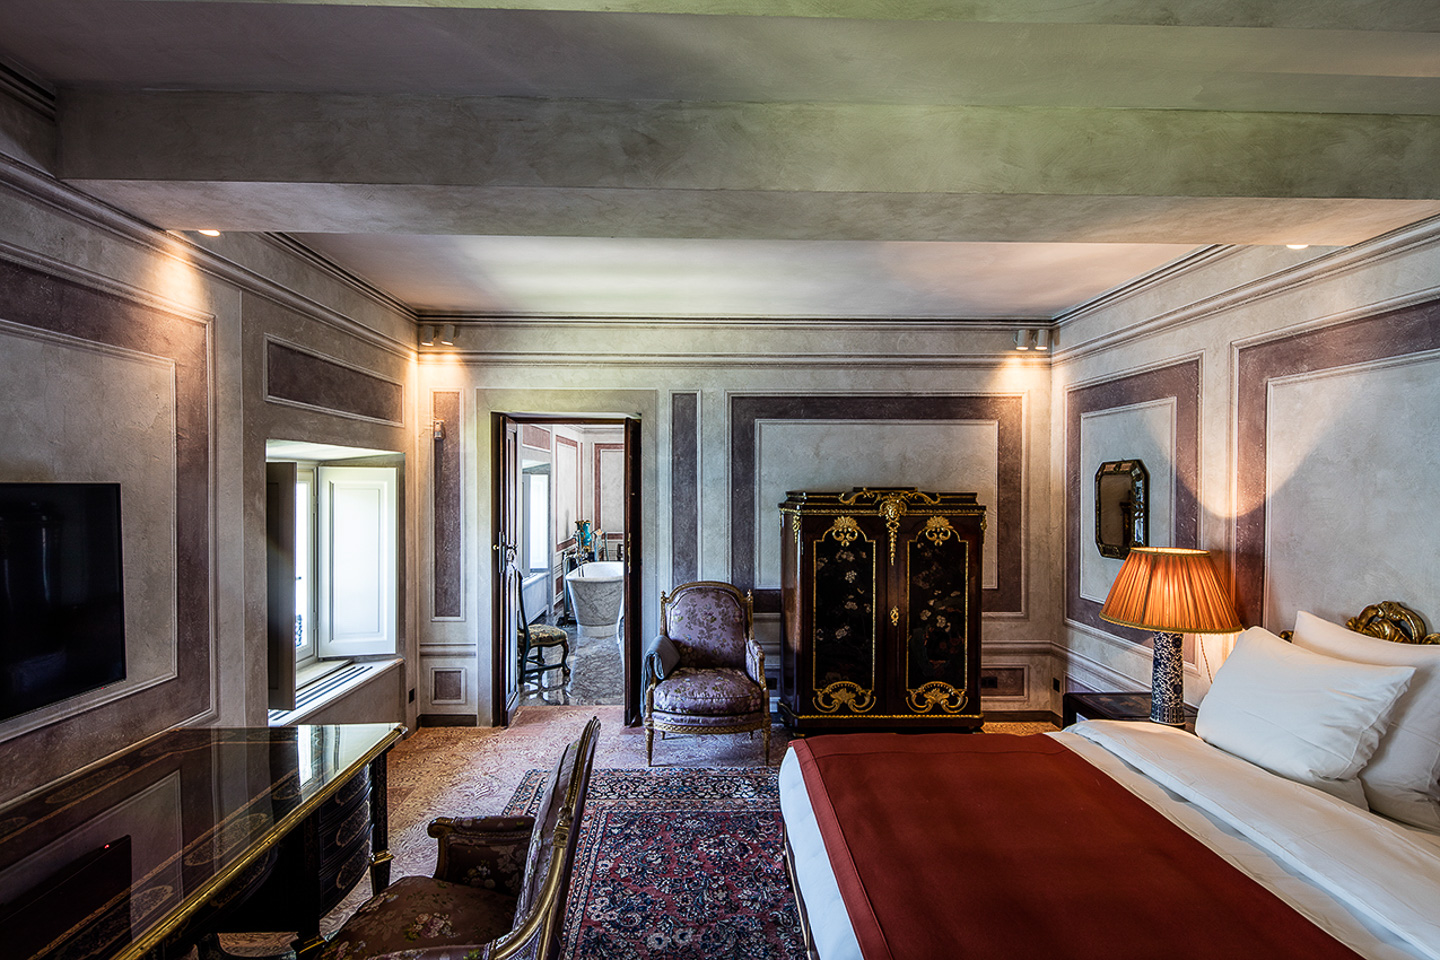 Villa Balbiano exclusive property on lake Como first rate accommodation second floor luxury suite ensuite marble bathroom bedroom 26000VB_int